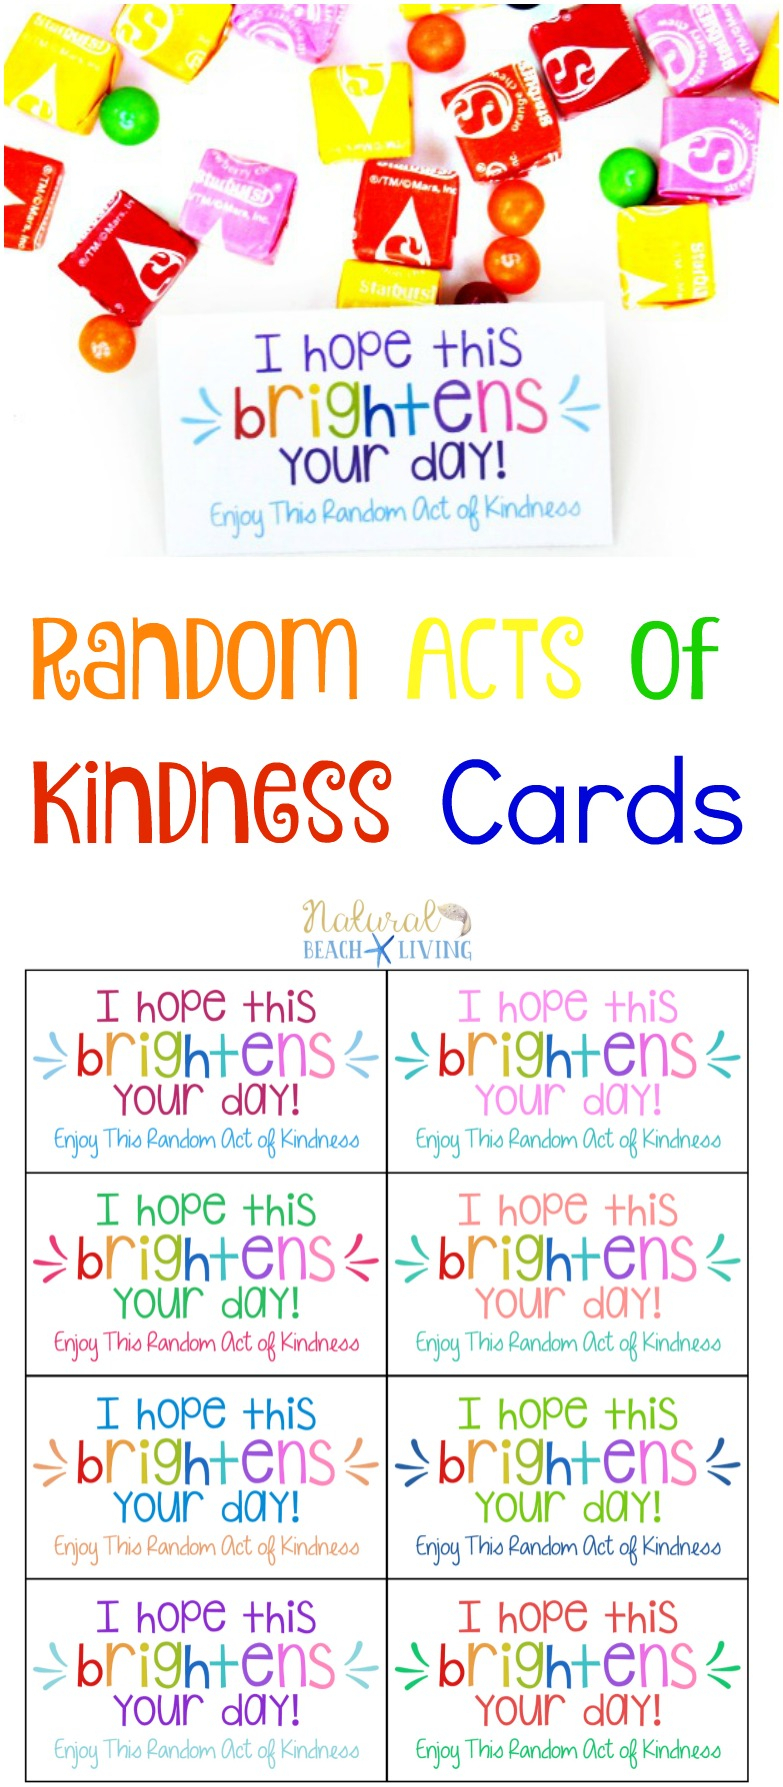 The Best Random Acts Of Kindness Printable Cards Free With Random Acts Of Kindness Cards Templates Kindness Activities Kindness Gifts Act Of Kindness Quotes